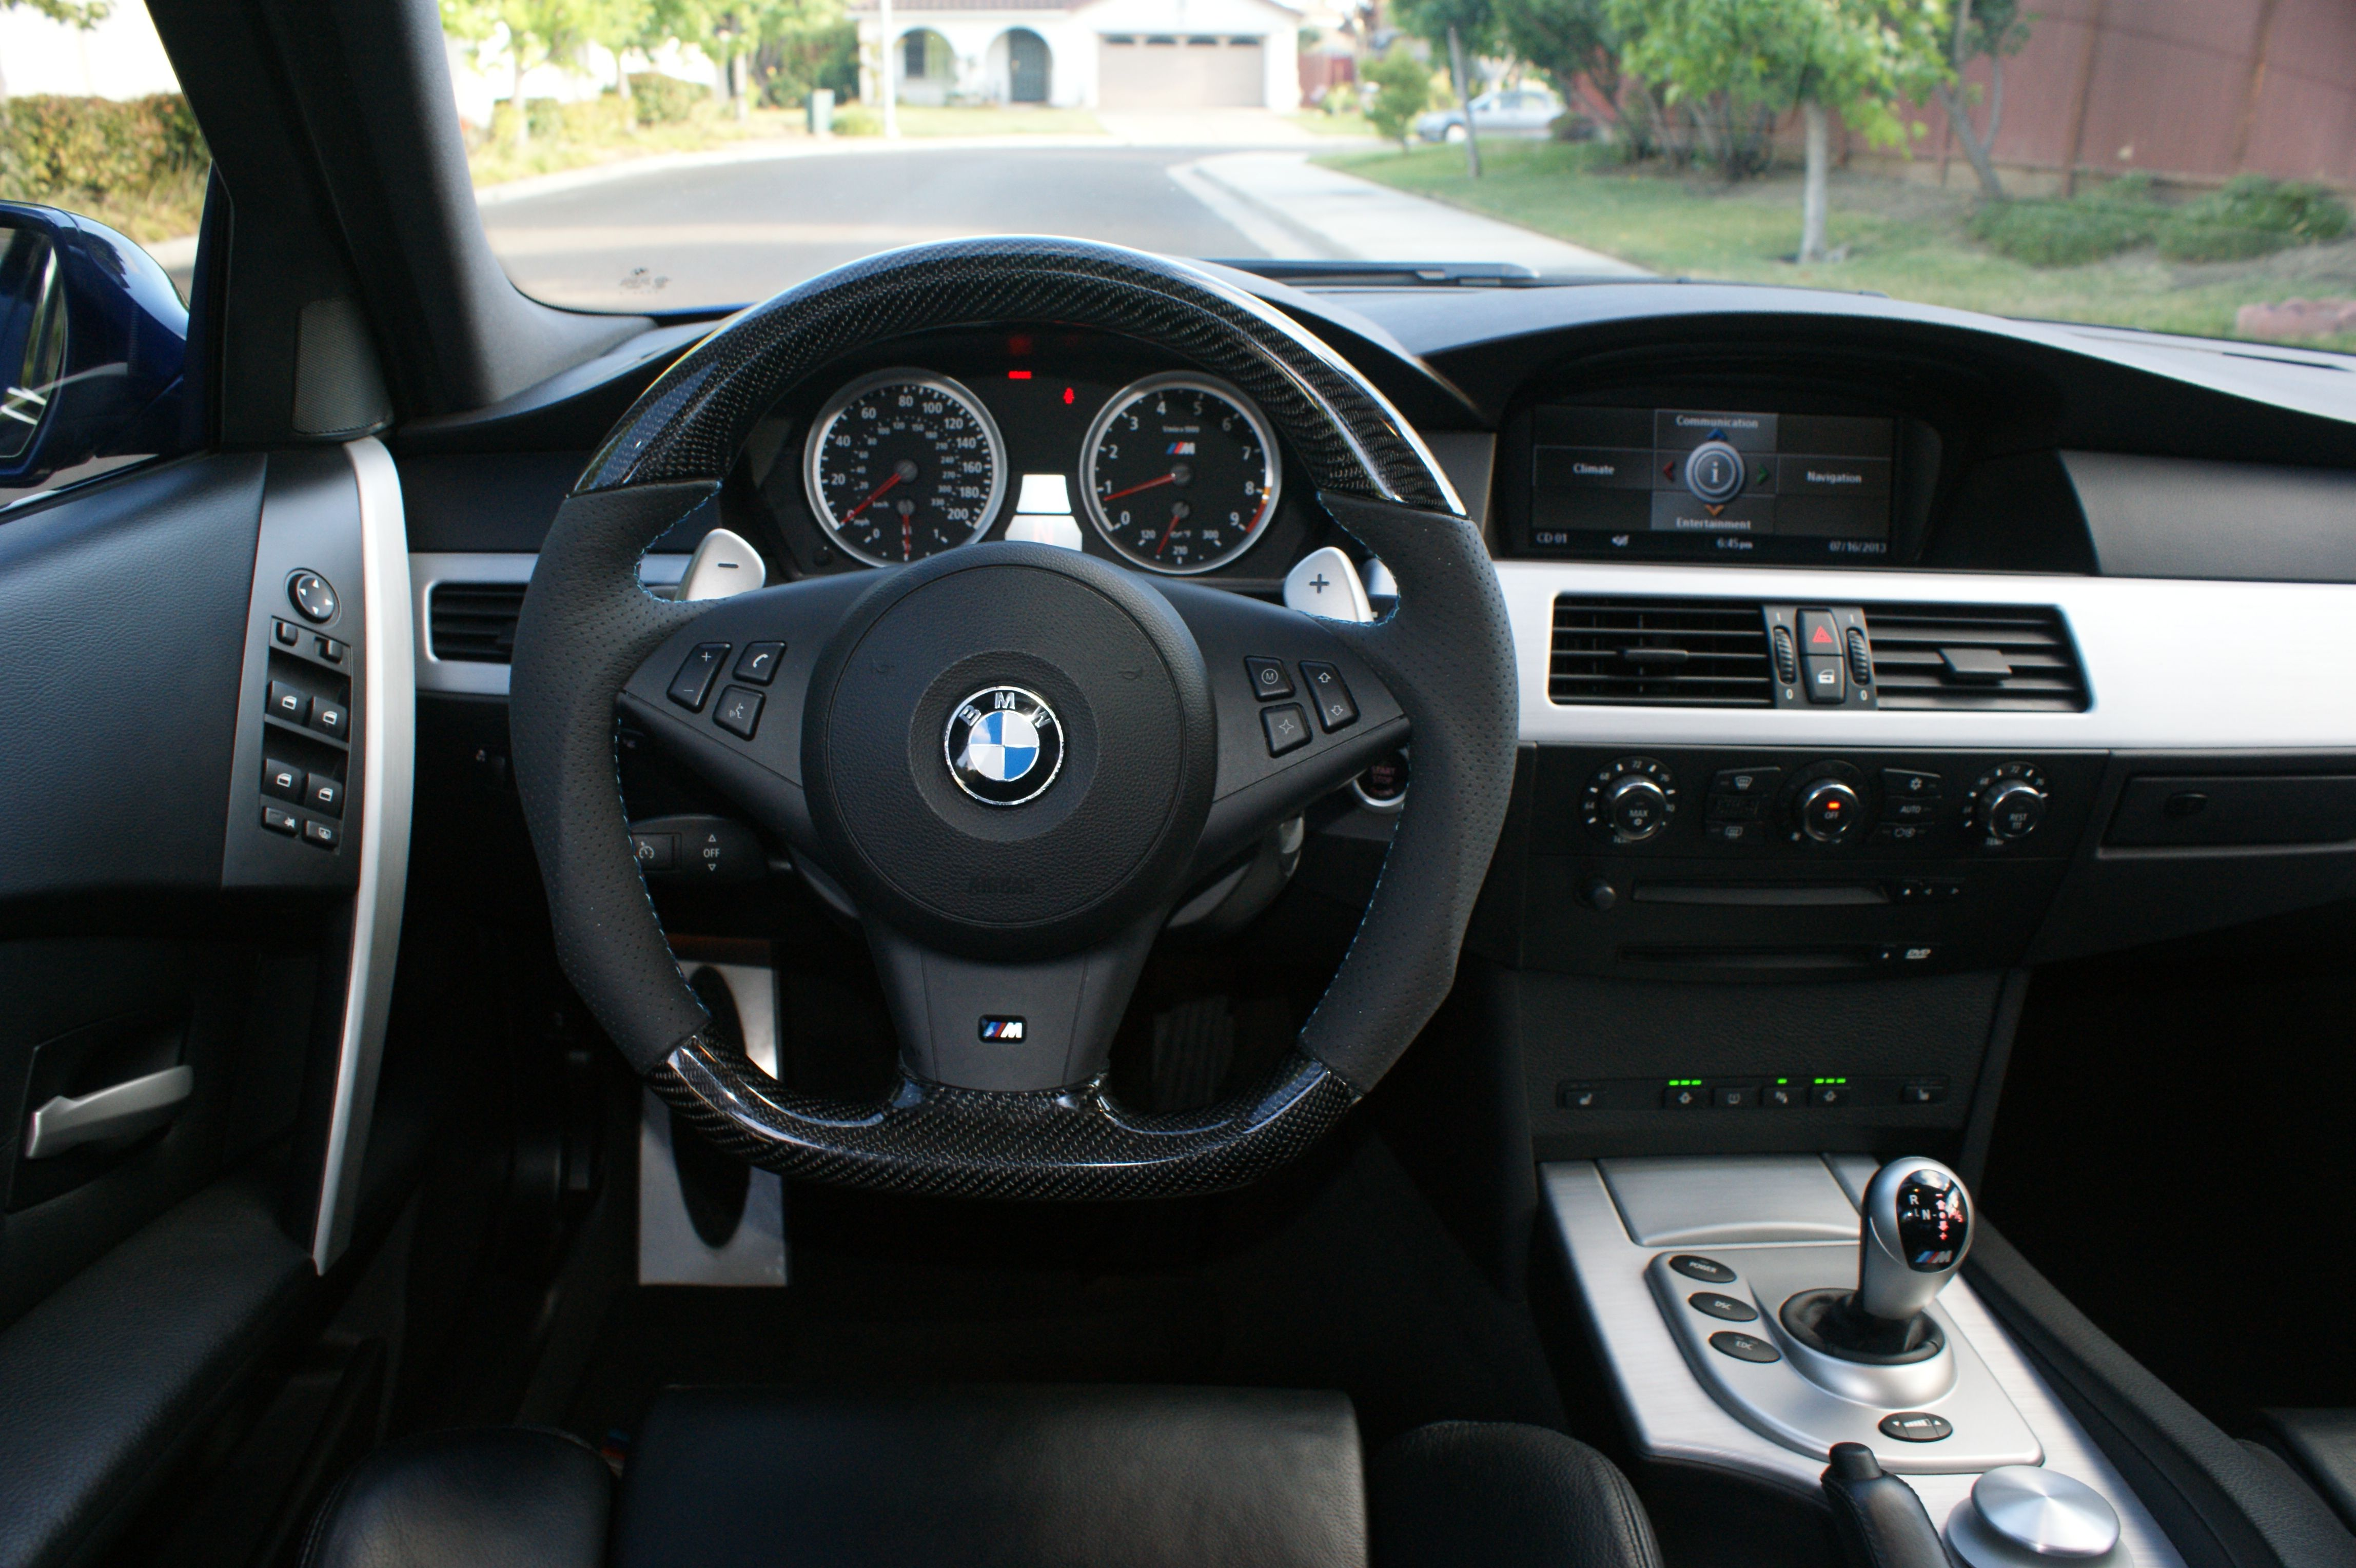 Bmw E60 M5 Interior 5 Series 2003 2010 Join Me At Tomhandy Co